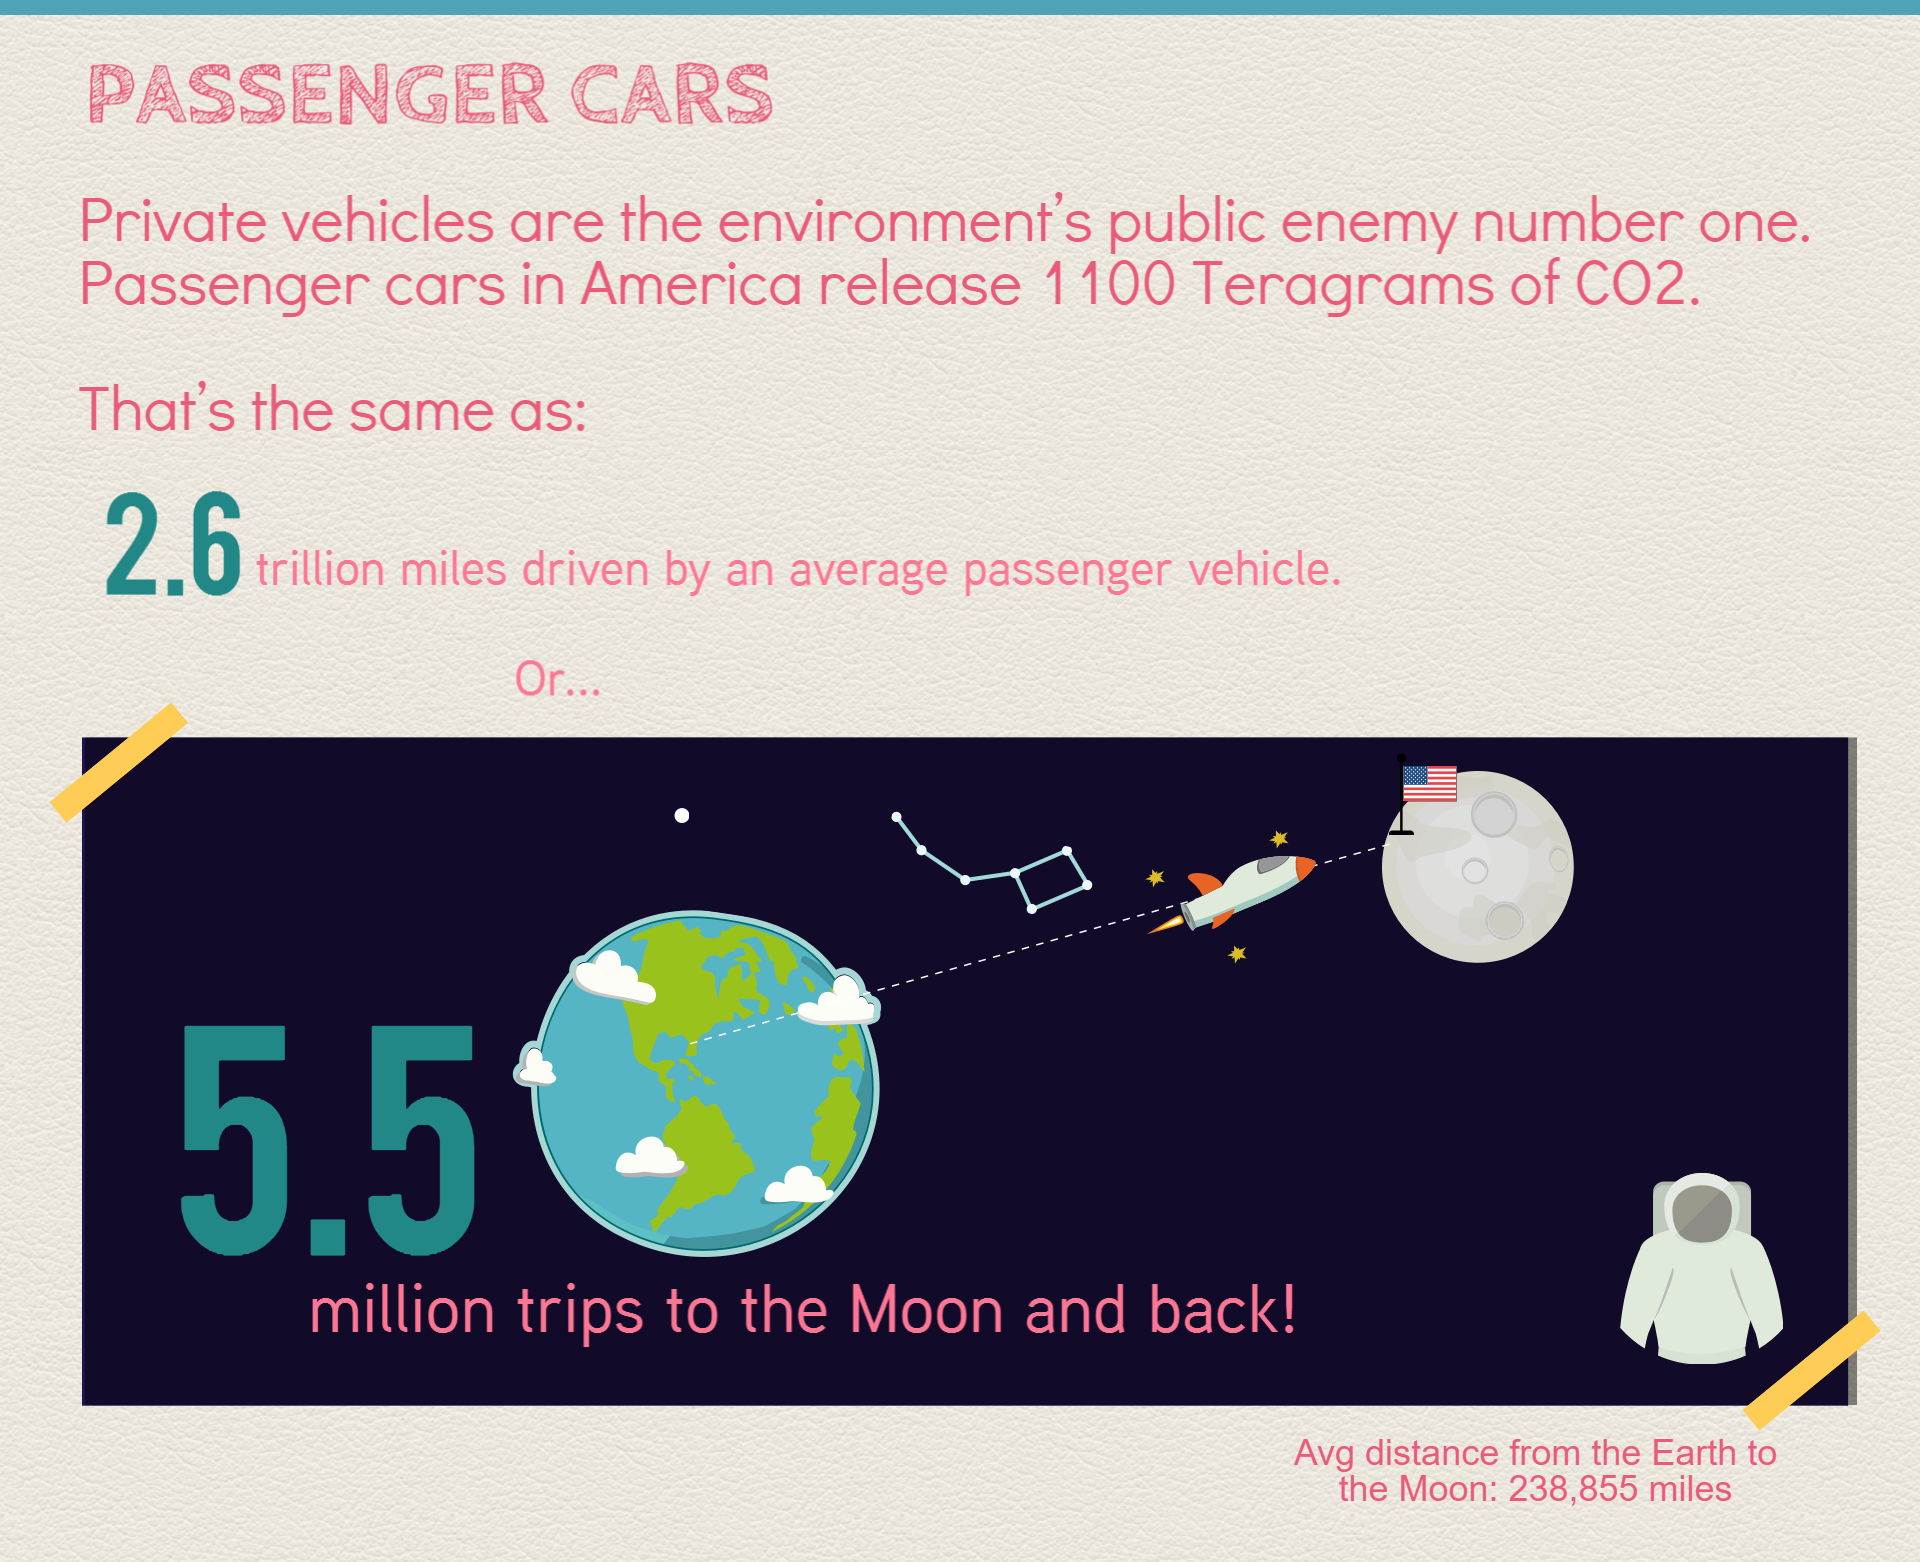 CO2 output from passenger cars